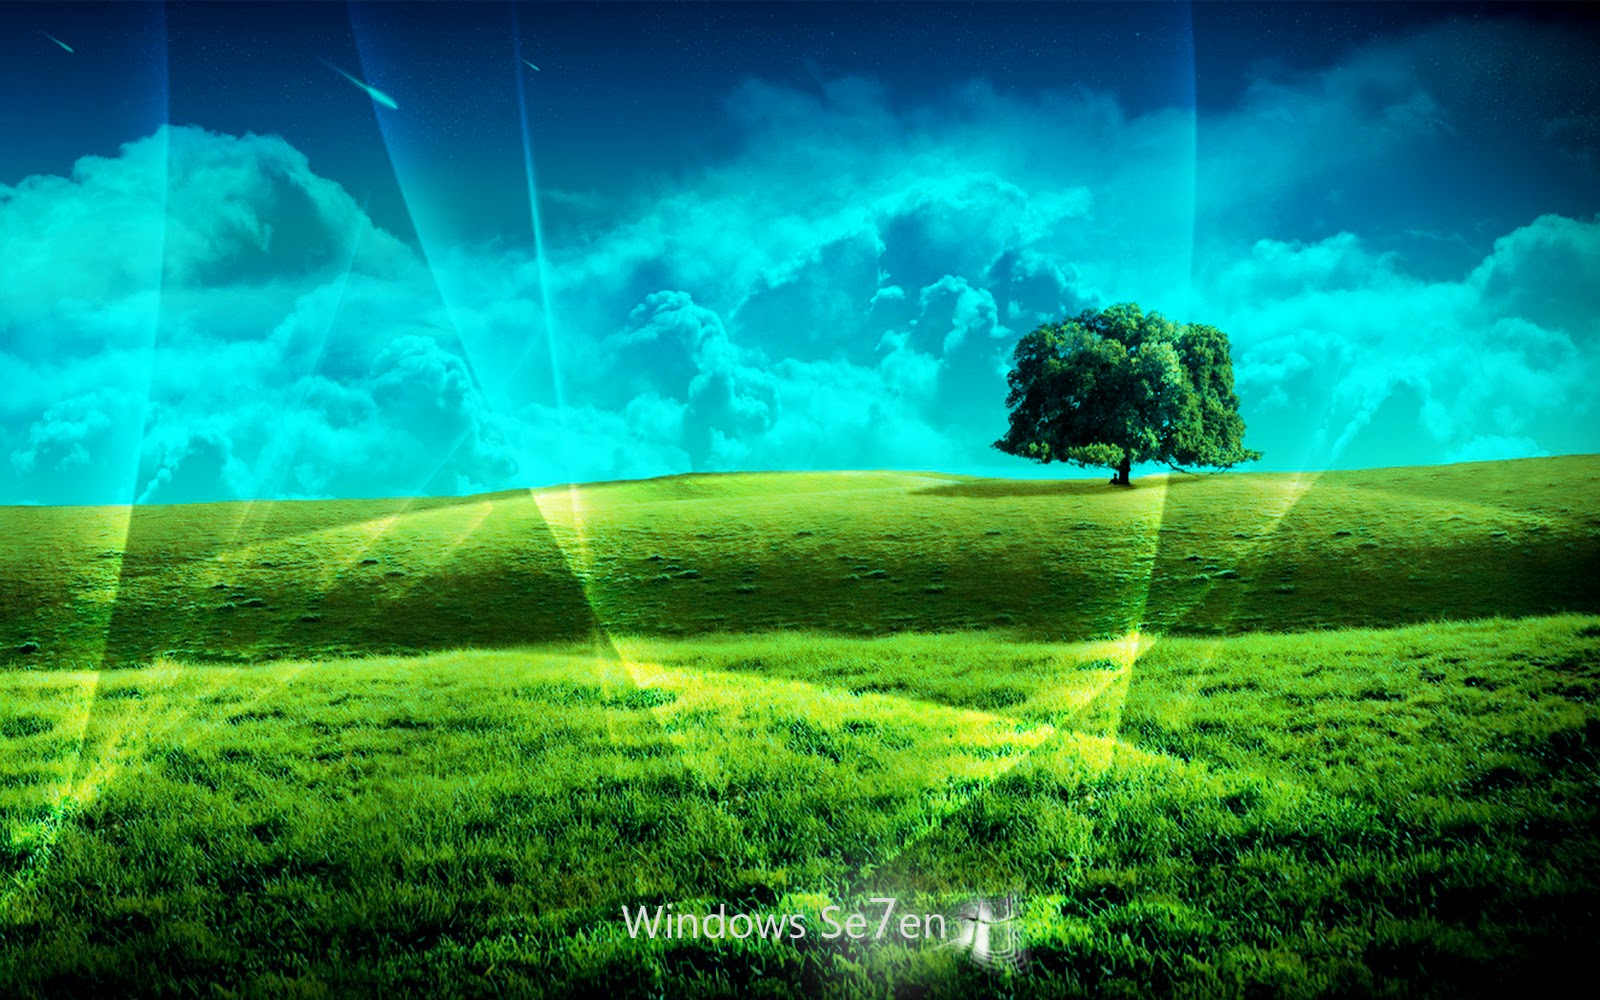 ... Desktop Best Quality Wallpapers on this Free Best Wallpaper website